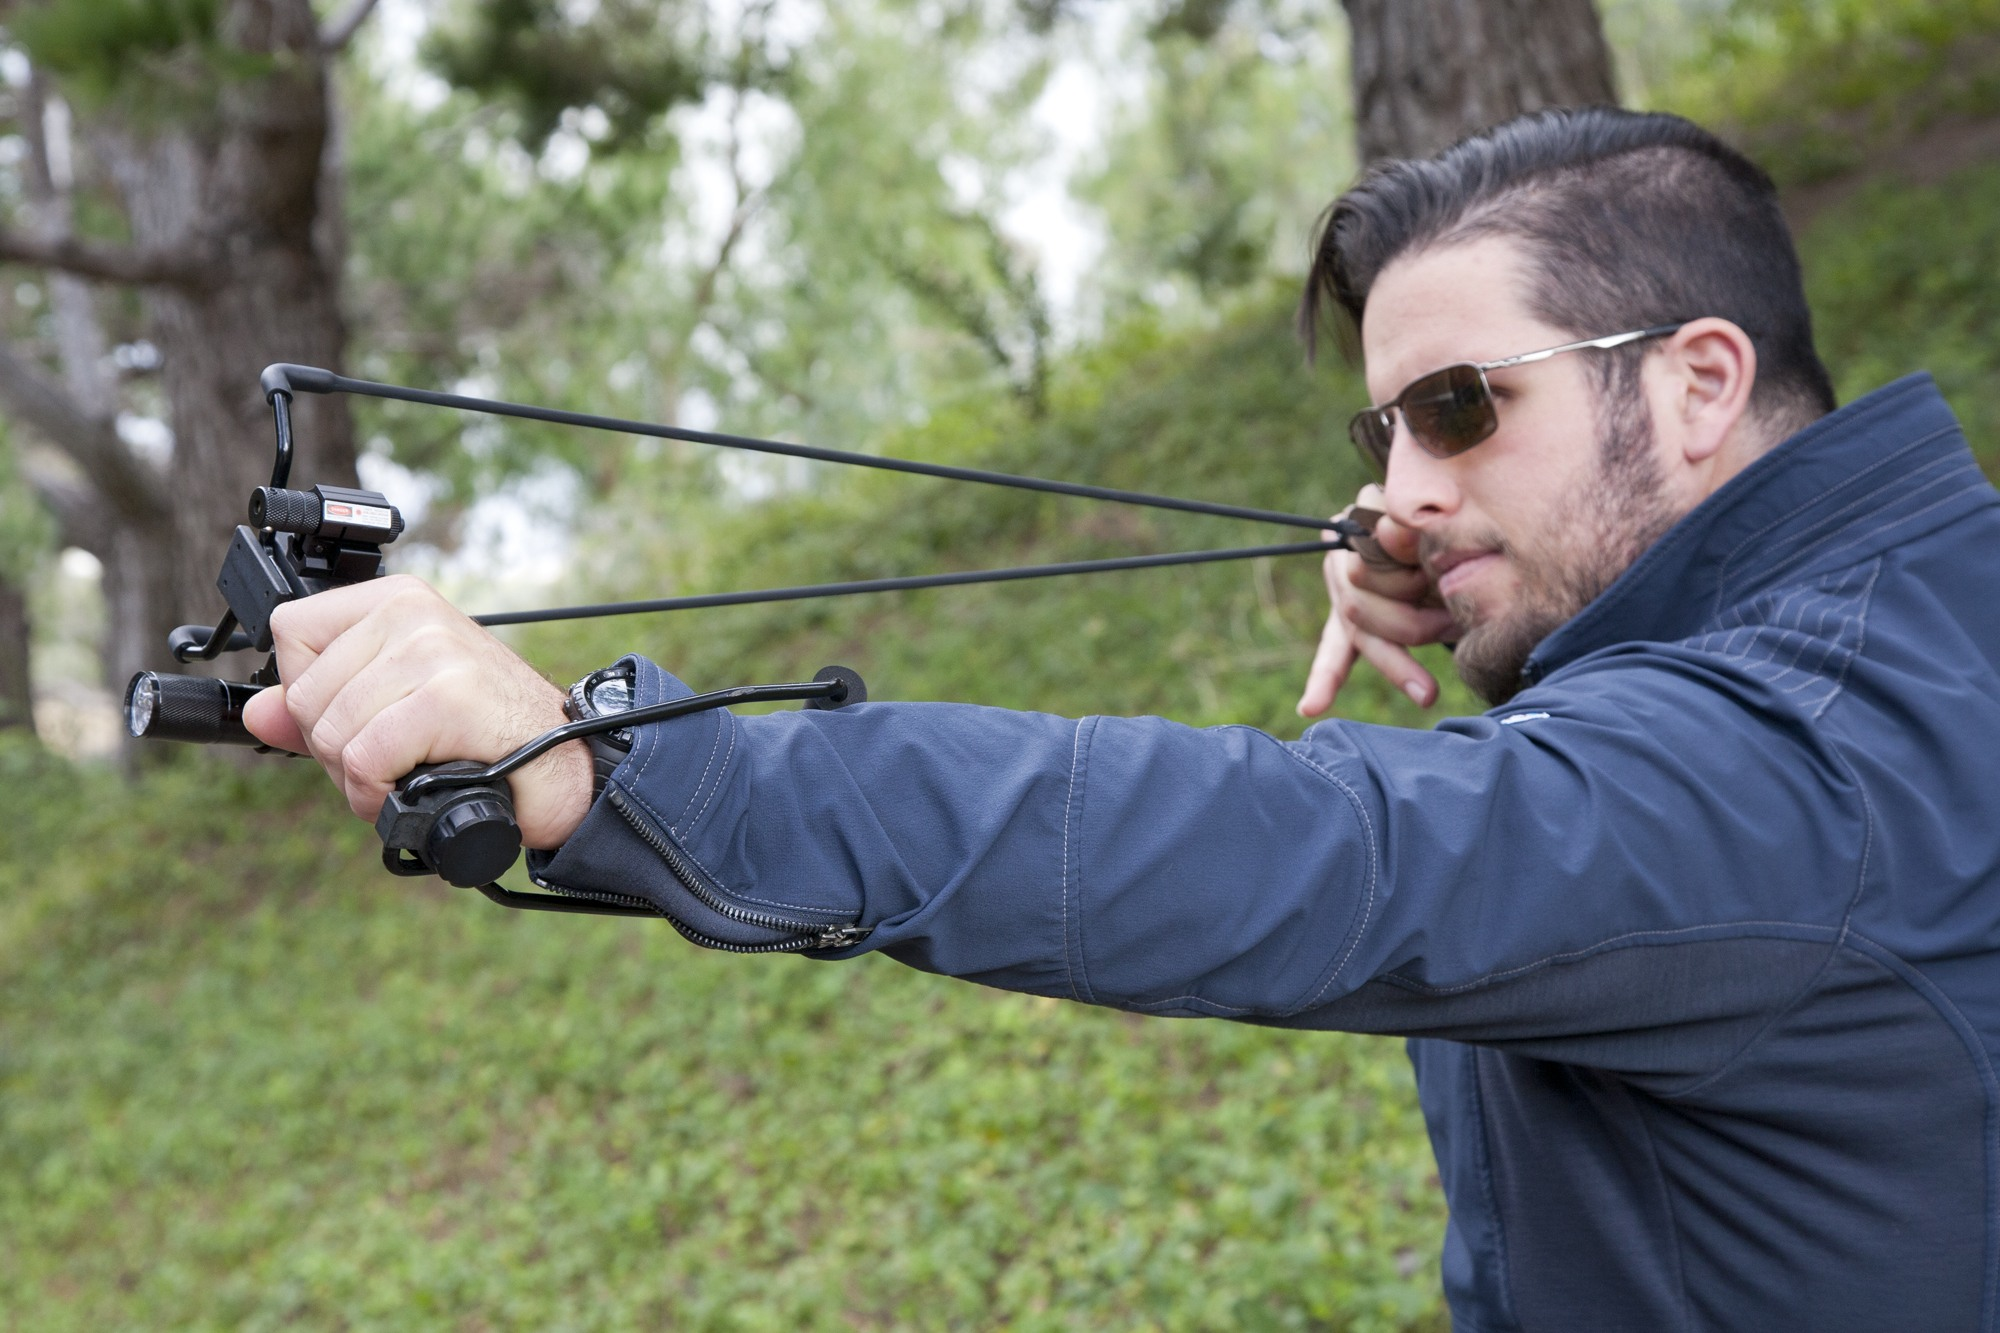 Learn How to Aim a Slingshot with This Quick Article